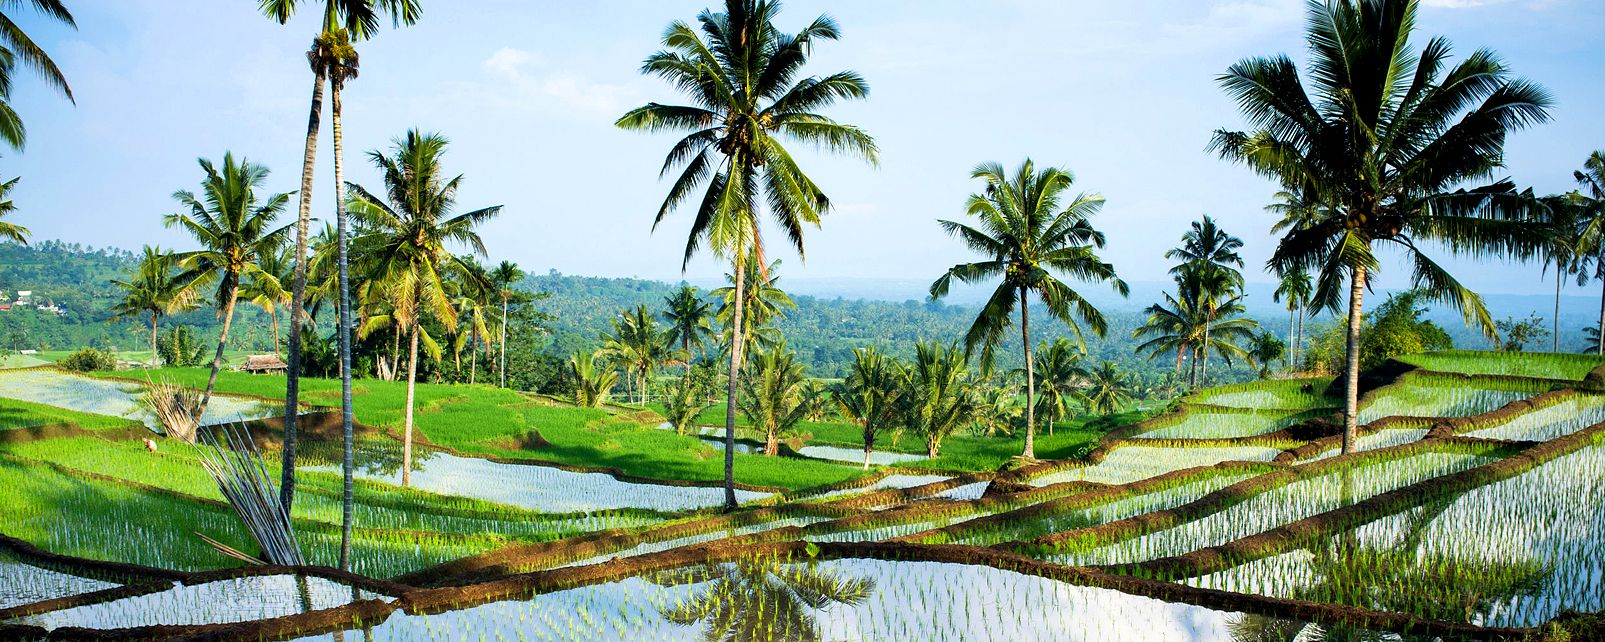 The Tetebatu paddy fields , Indonesia